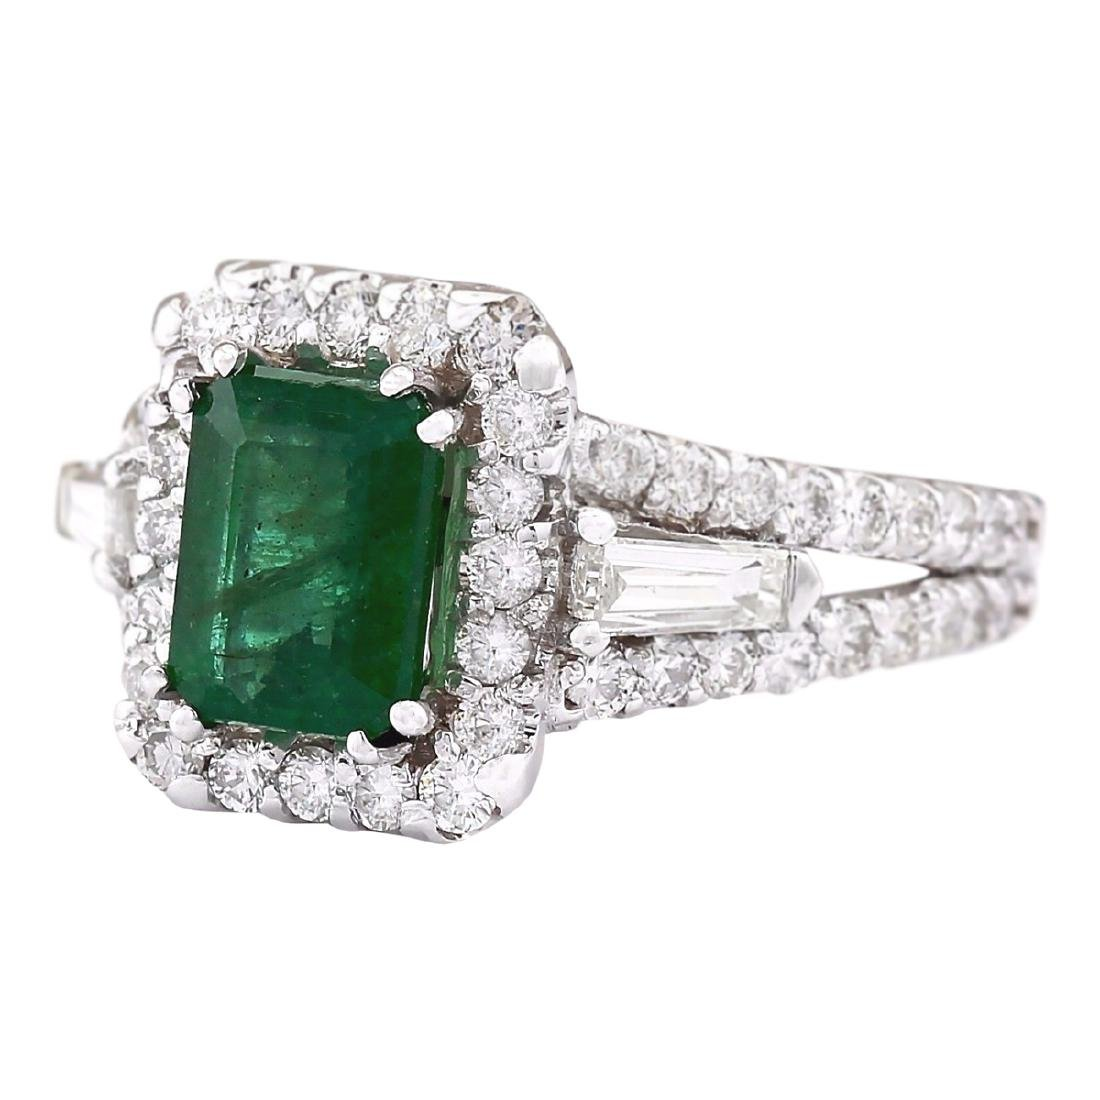 3.30 CTW Natural Emerald And Diamond Ring In 18K White - 2